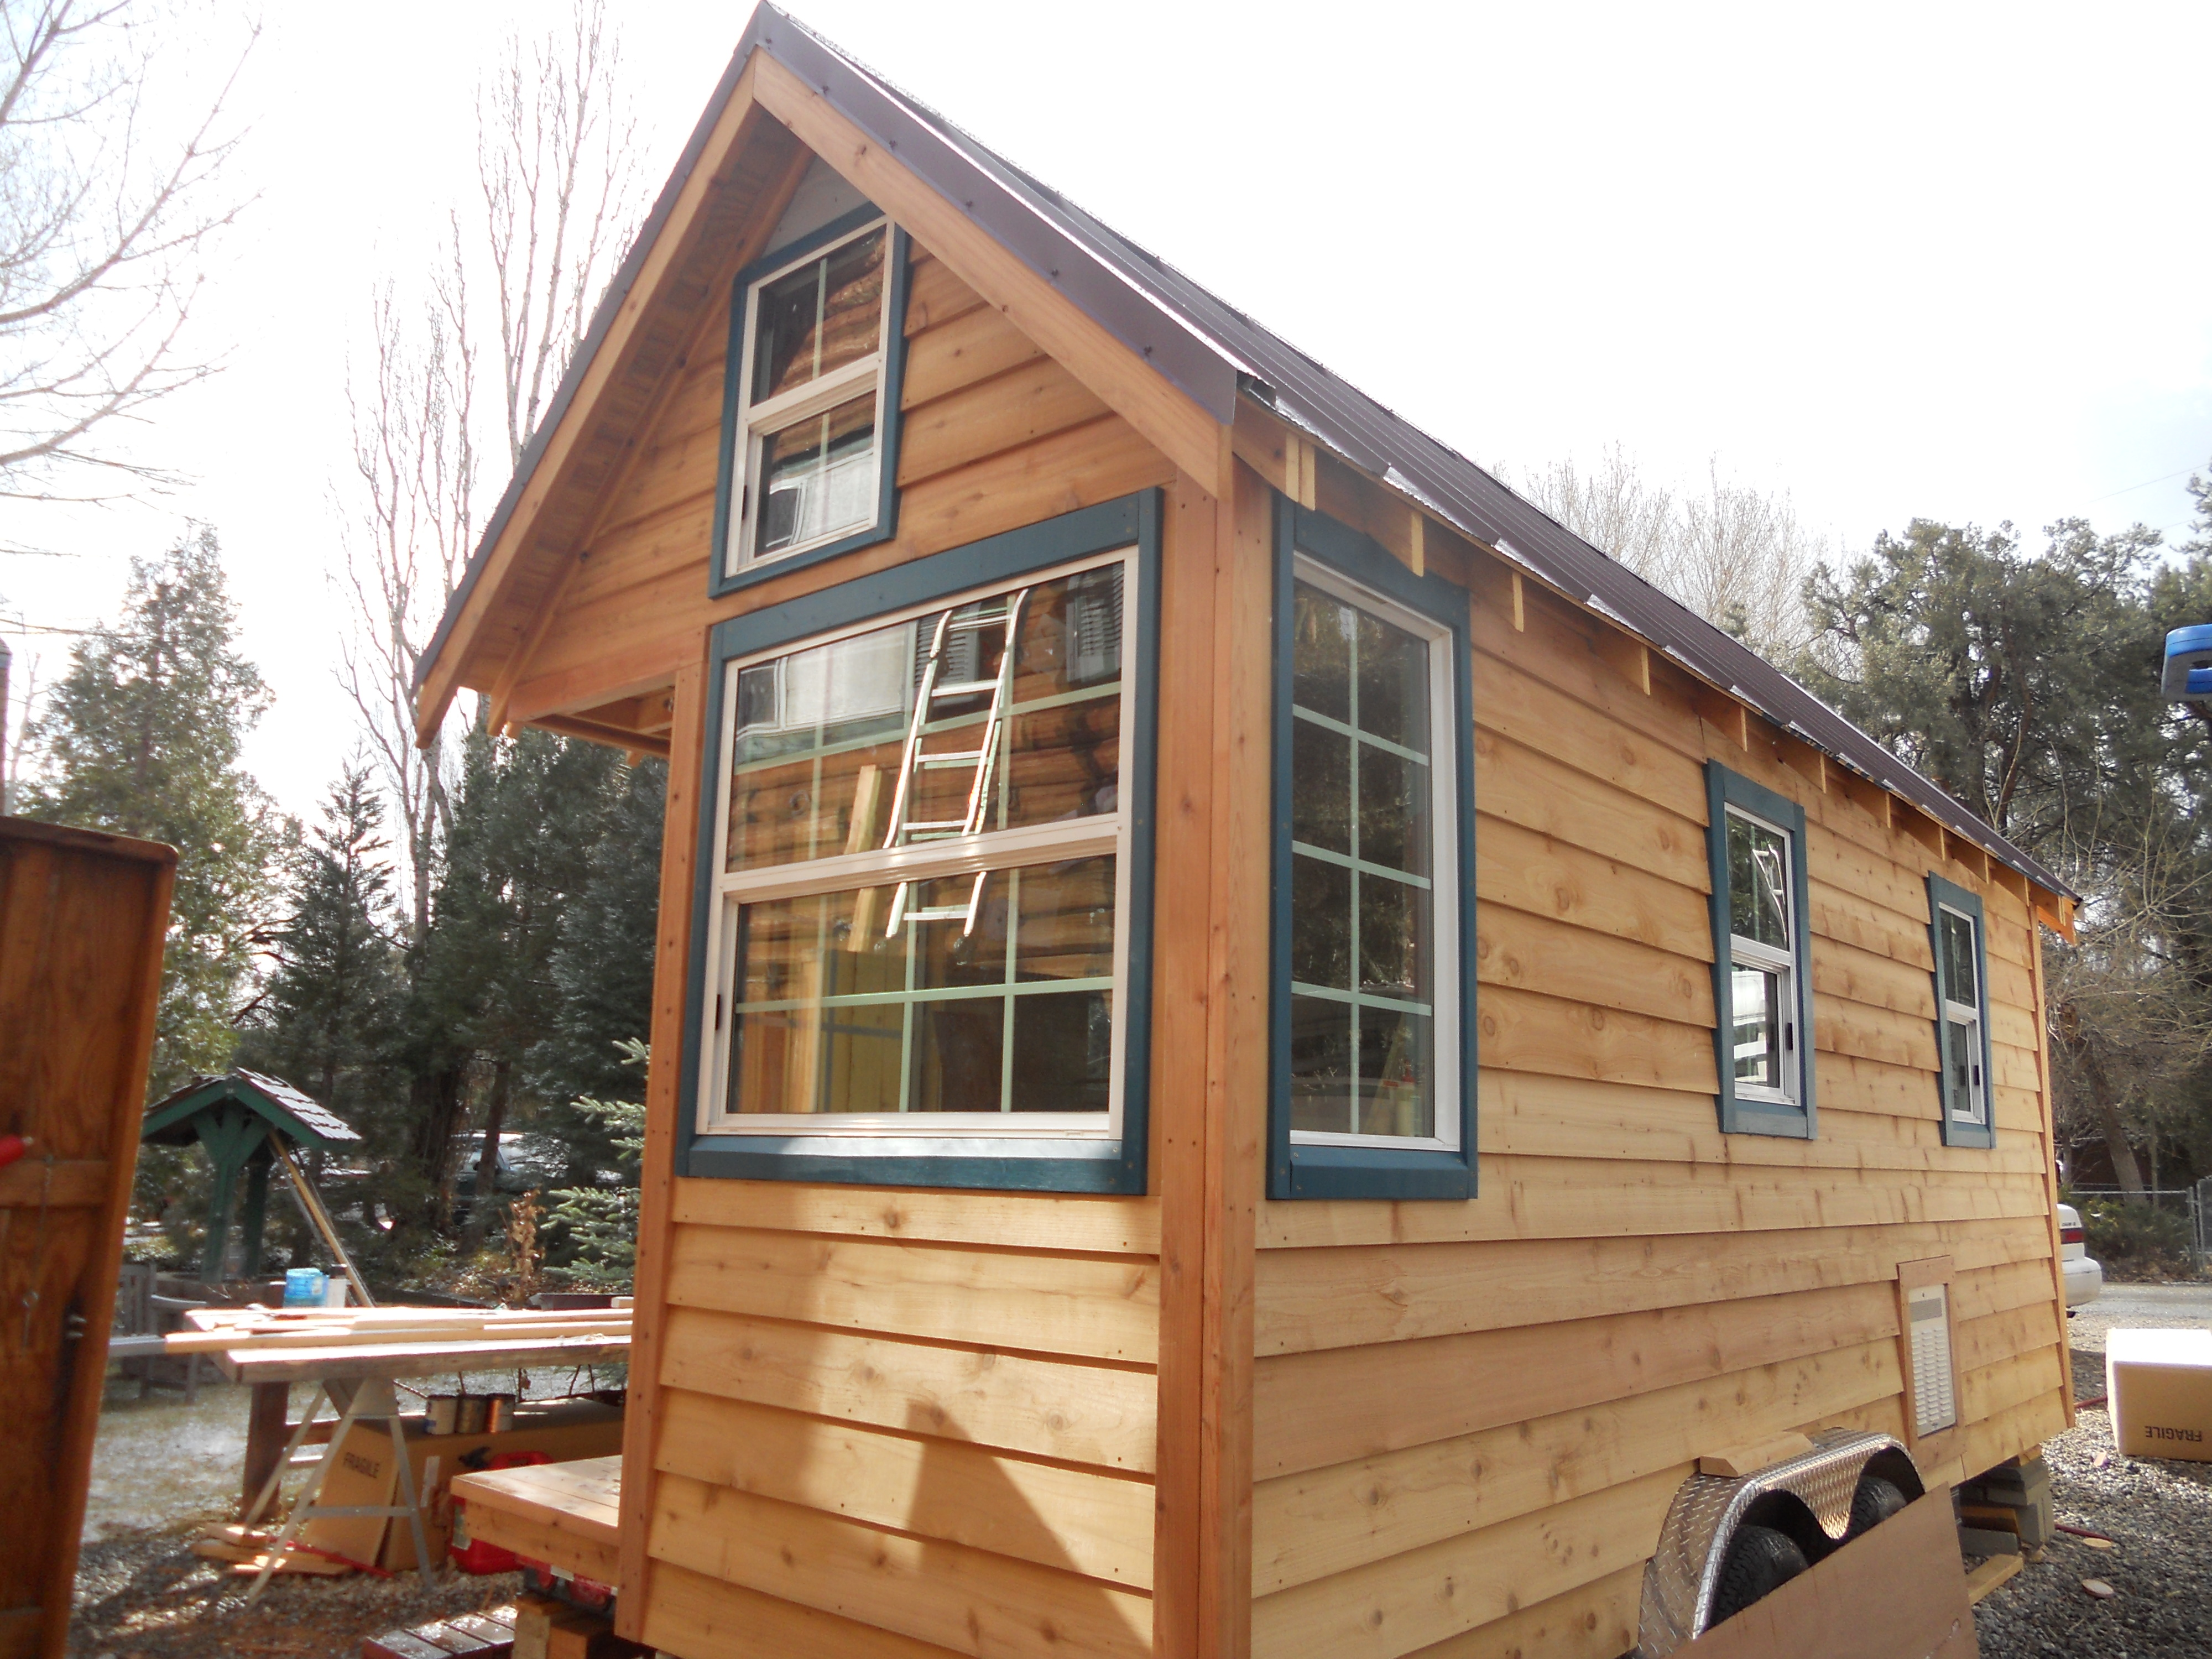 Cedar siding littleyellowdoor for What is the best siding for a house